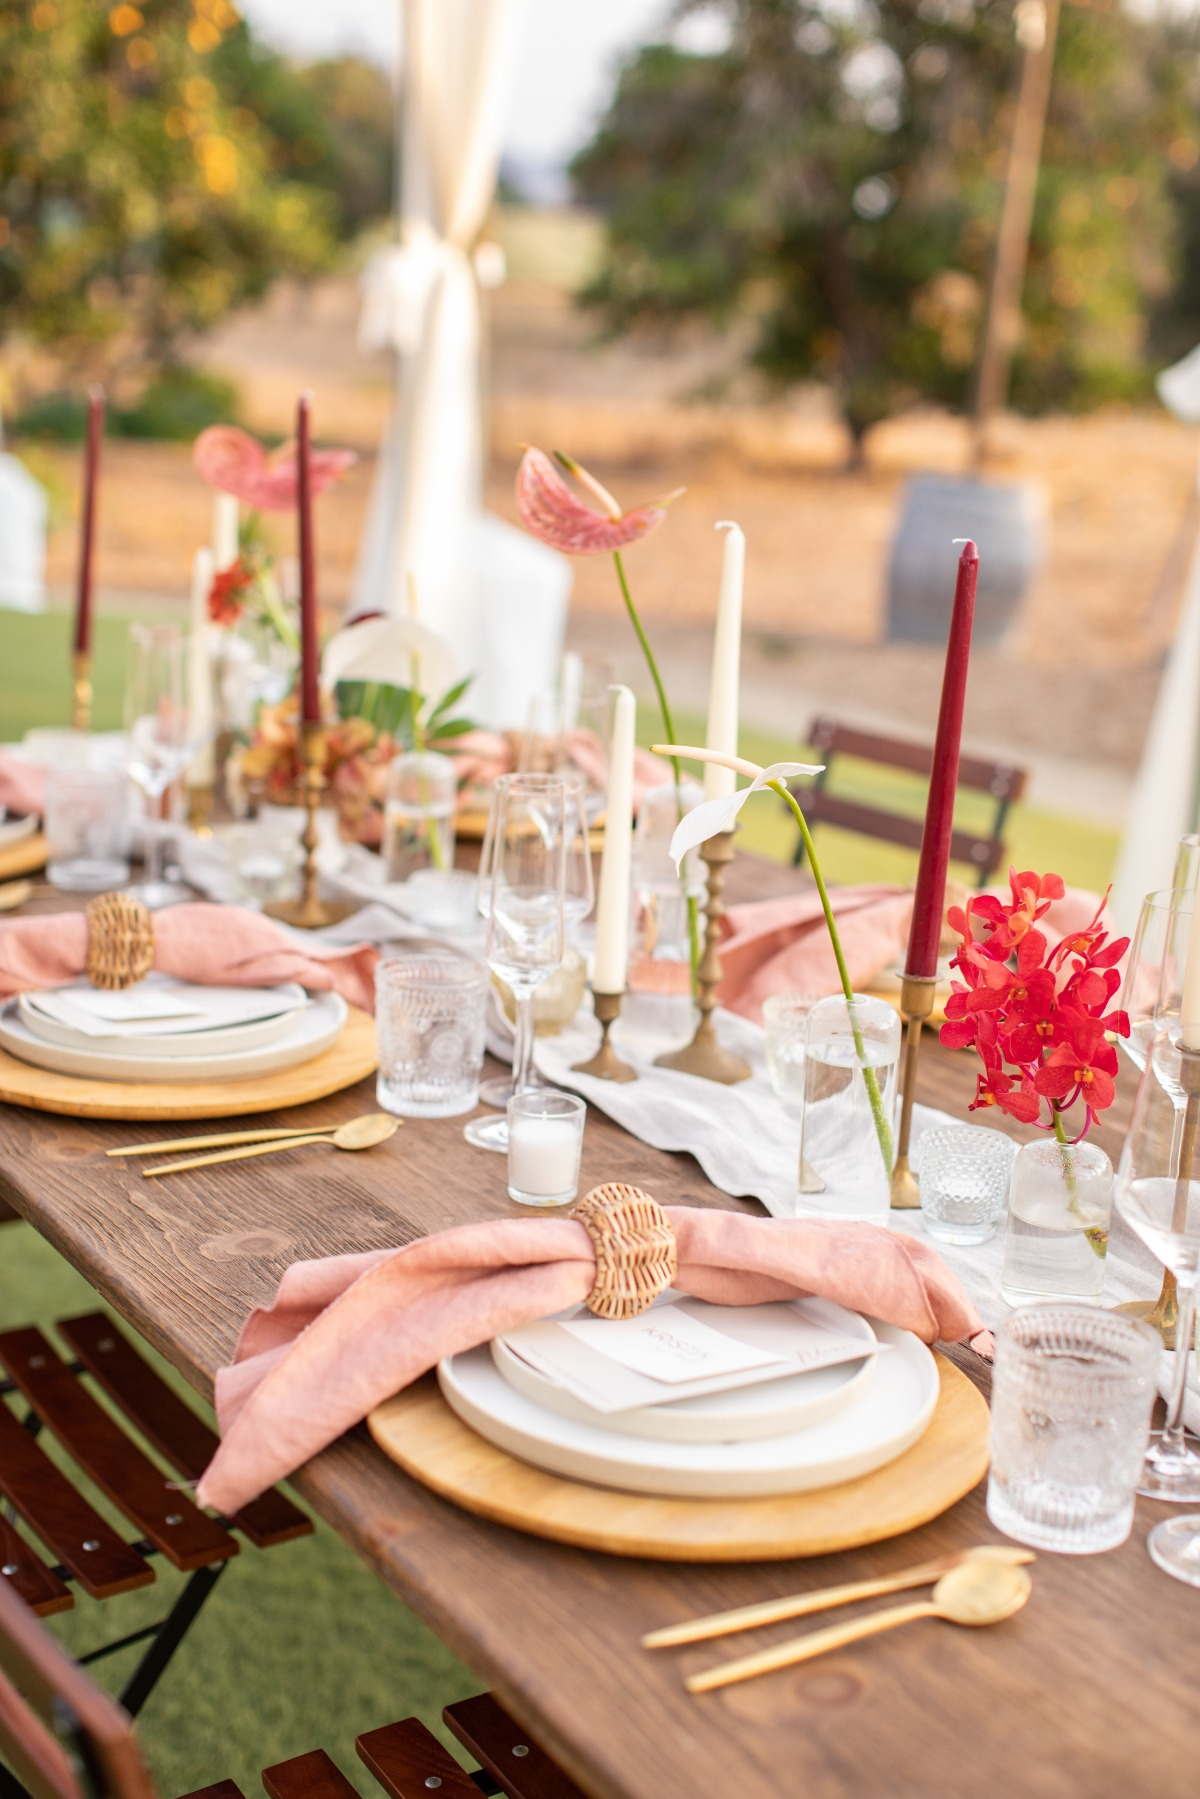 How To Have A Vintage Inspired Wedding At A Historic Landmark in SoCal